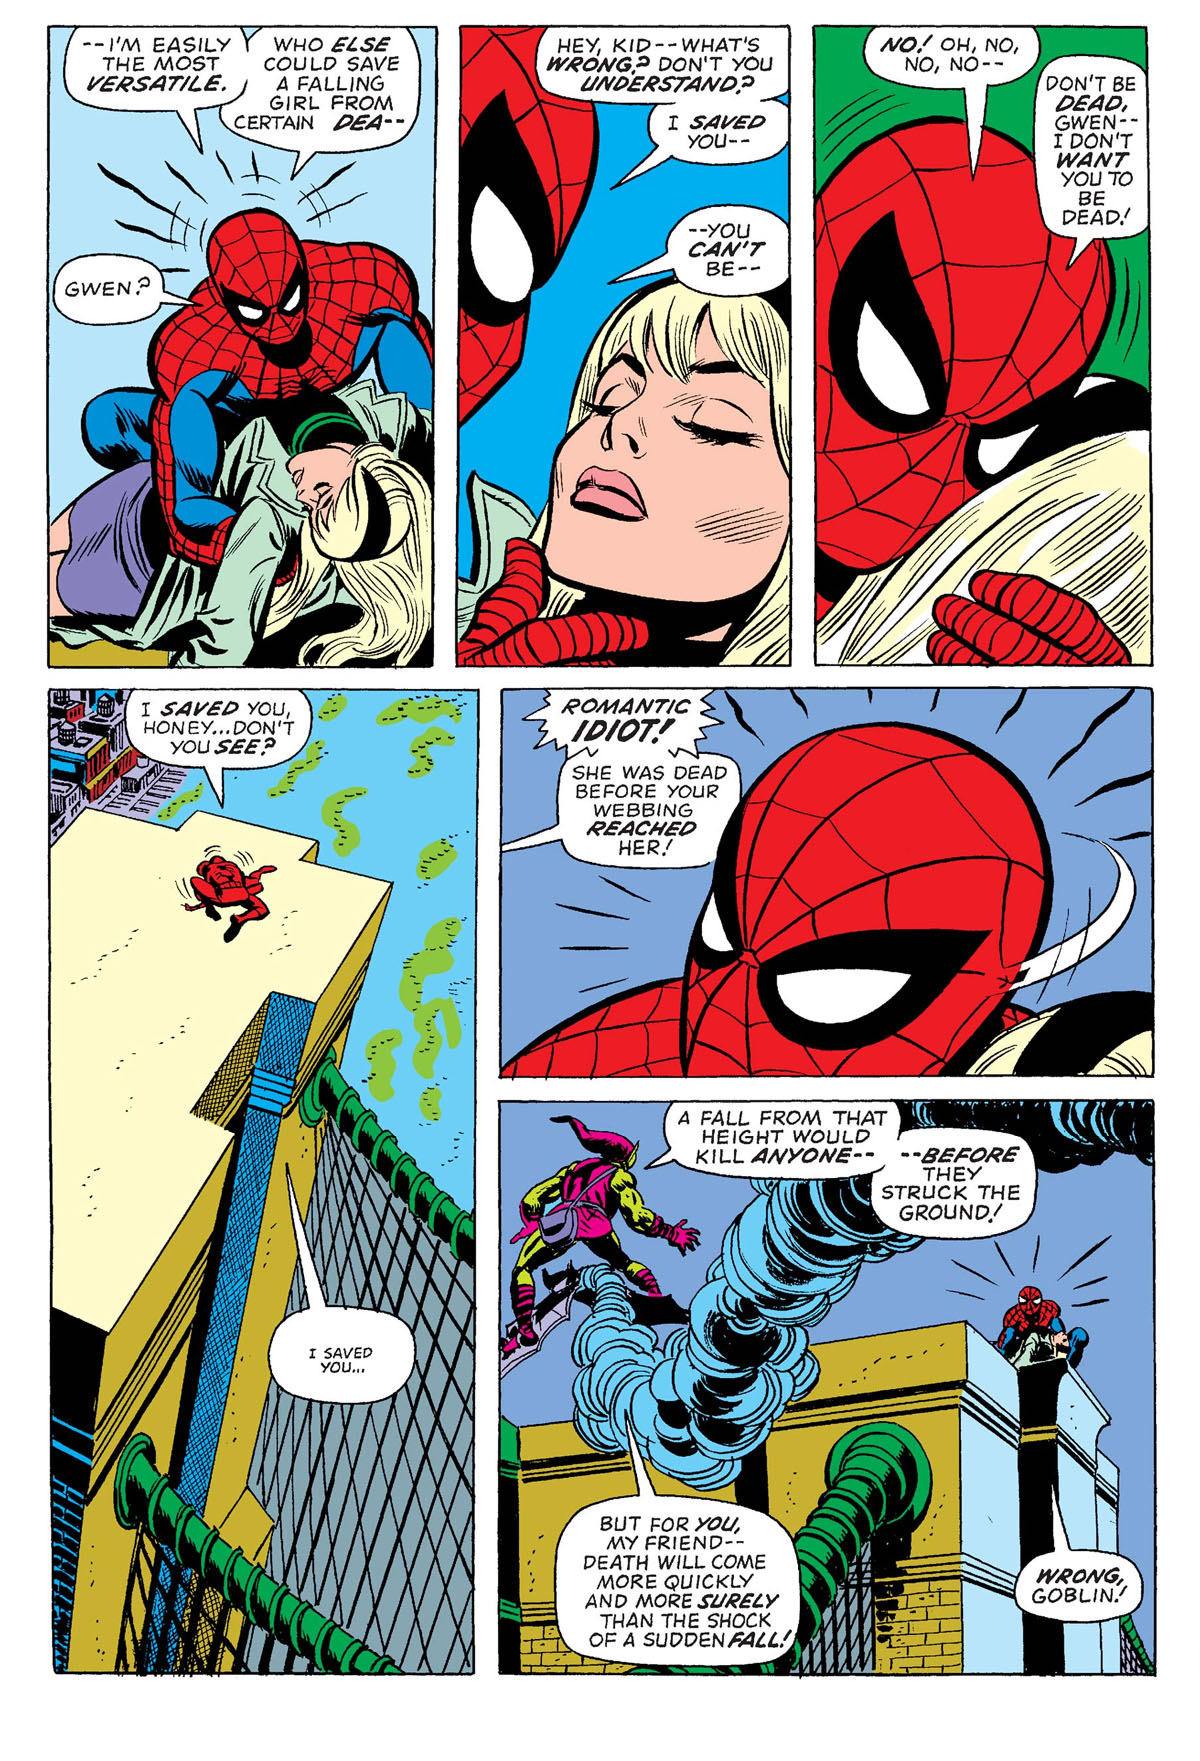 2: The Night Gwen Stacy Died – Amazing Spider-Man #121-122